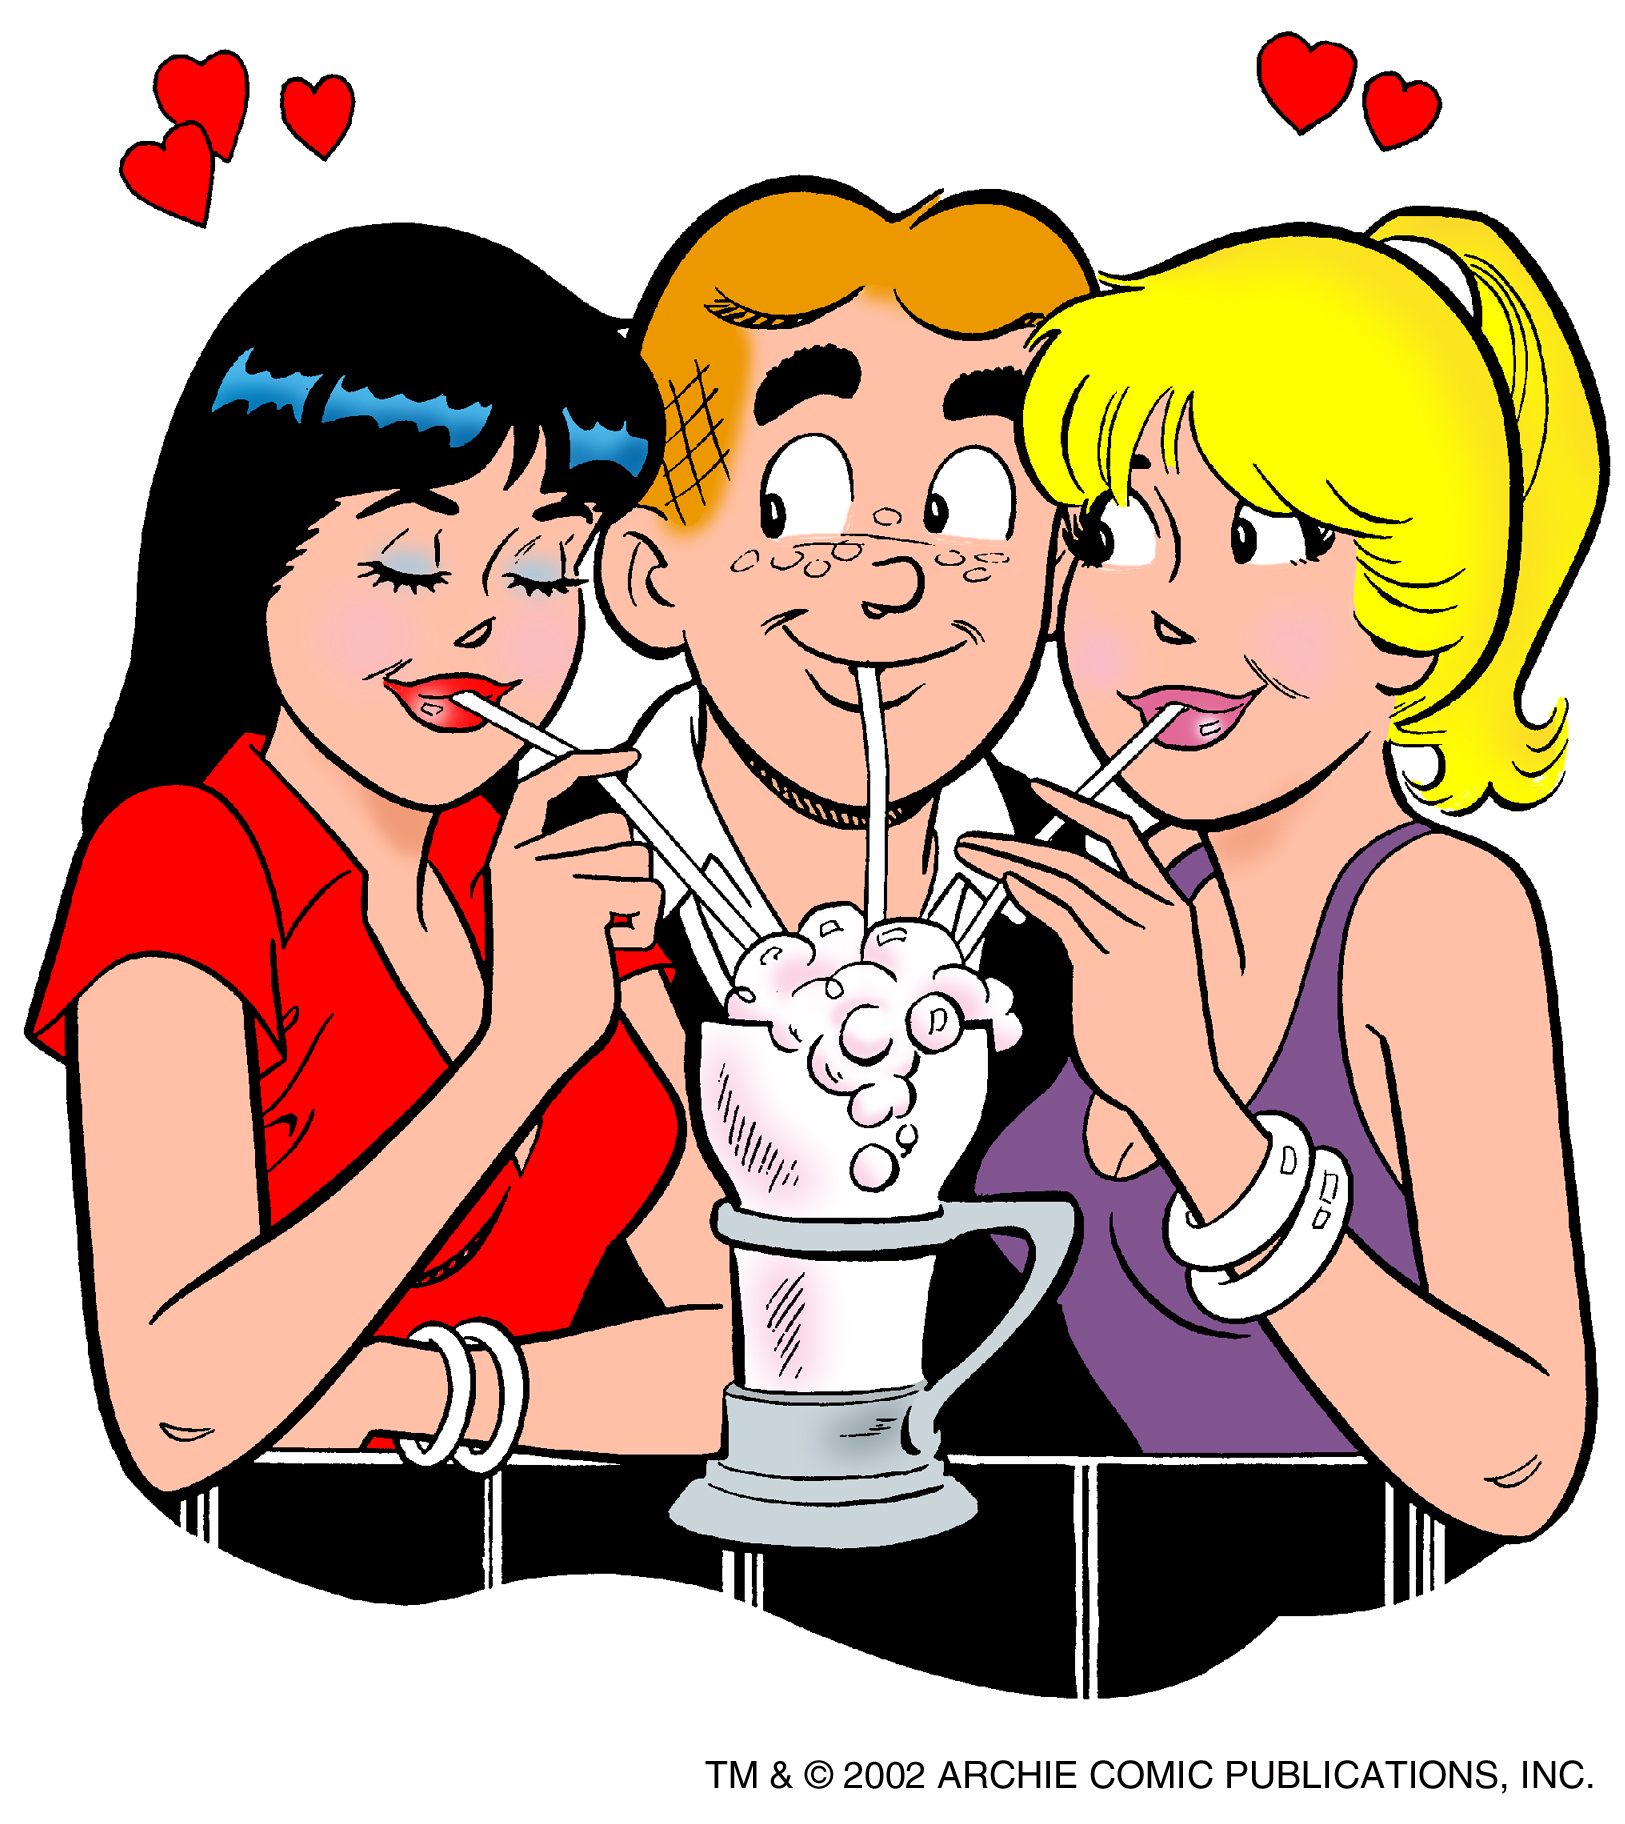 Archie Comics live action series 'Riverdale' coming to The CW